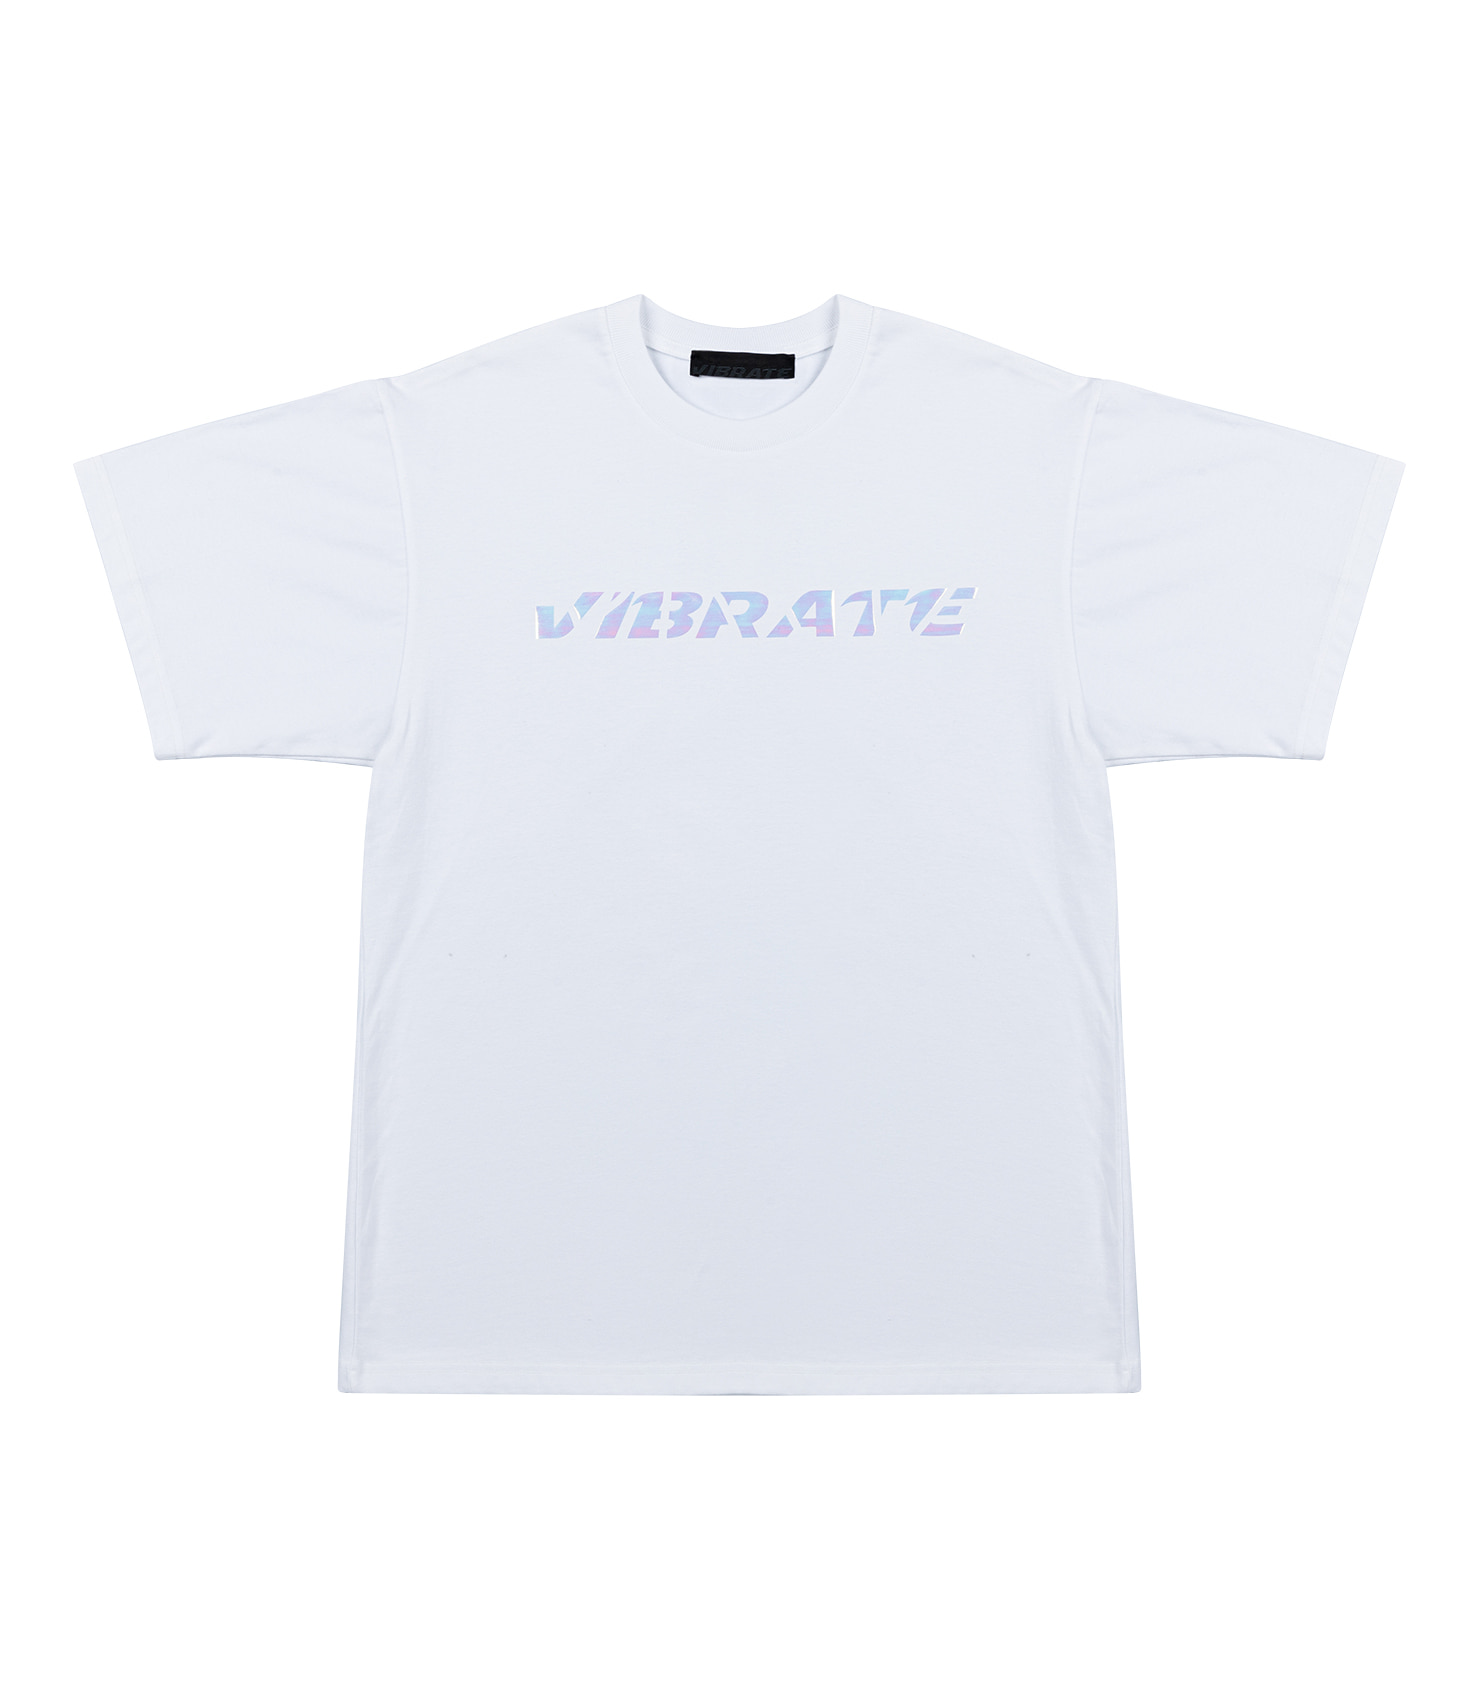 V FLASH M007 T-SHIRT (WHITE)